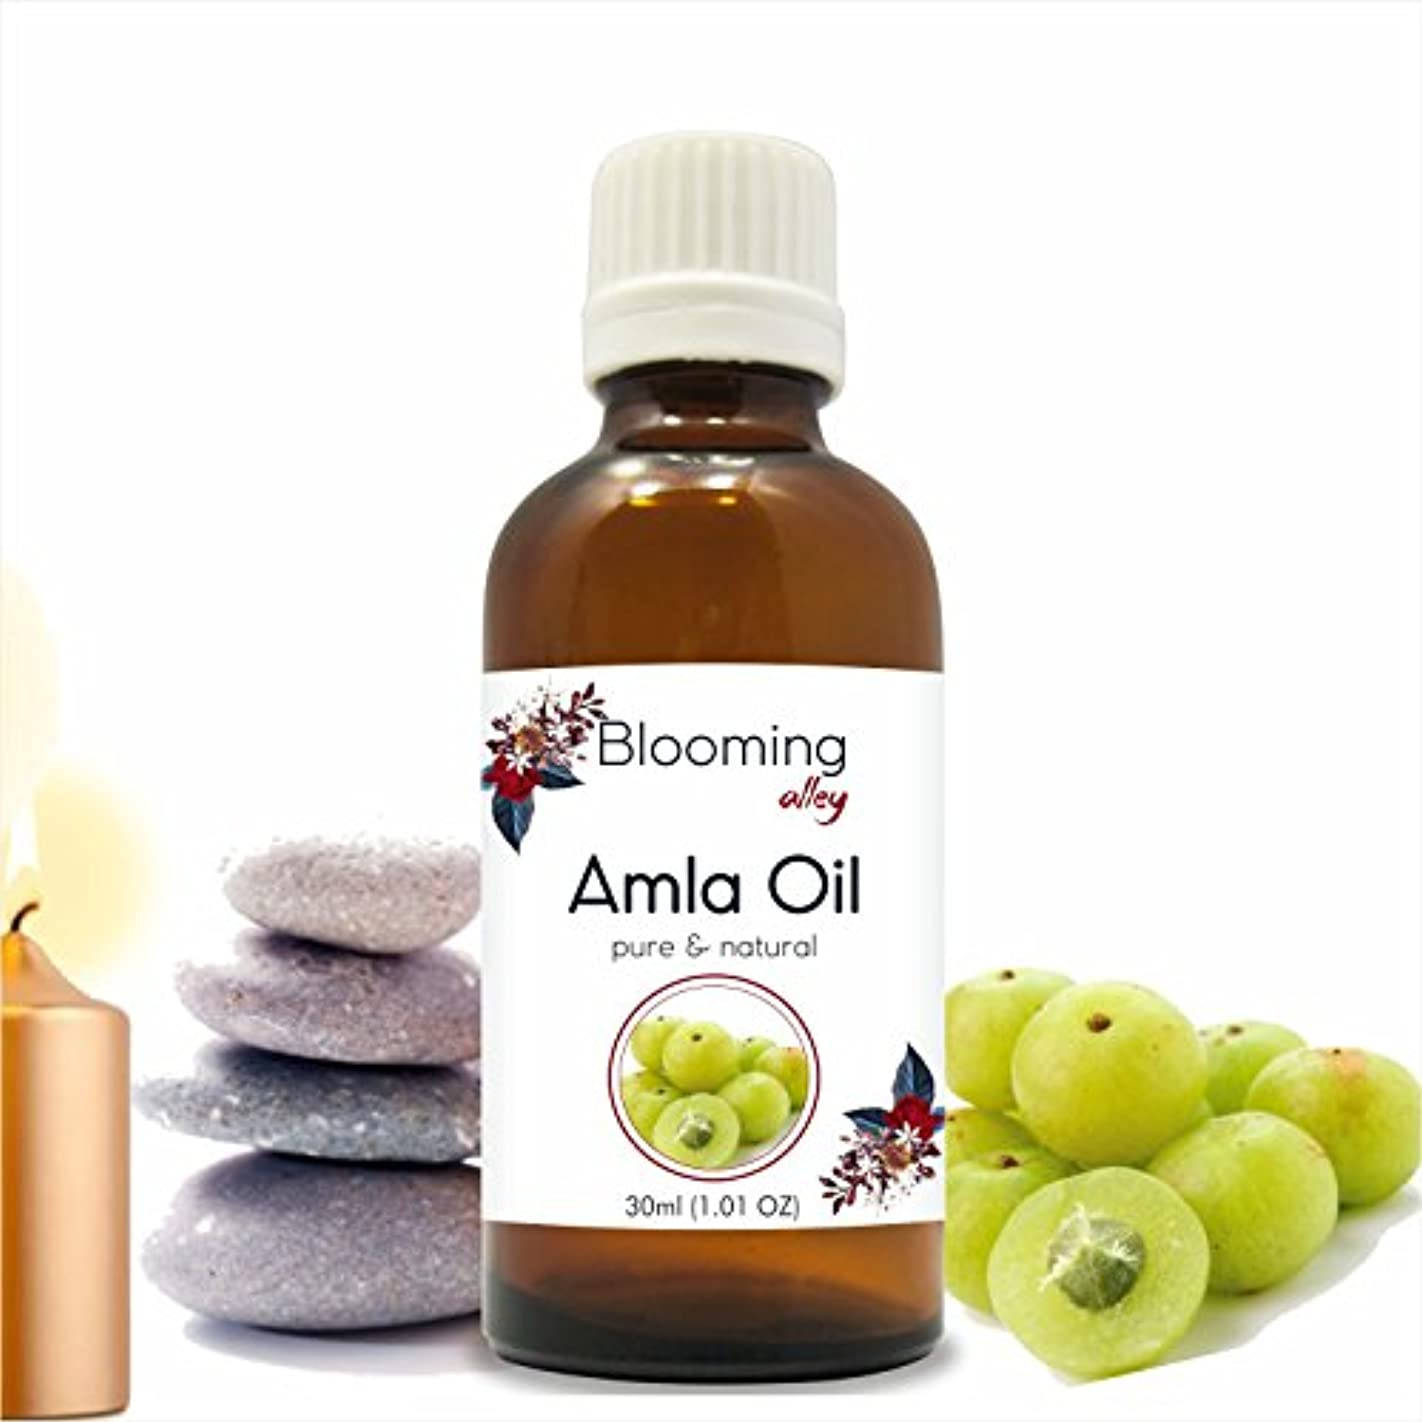 事件、出来事チェスをする同一性AMLA Indian Gooseberry (Emblica officinalis) Infused Oil 30ML